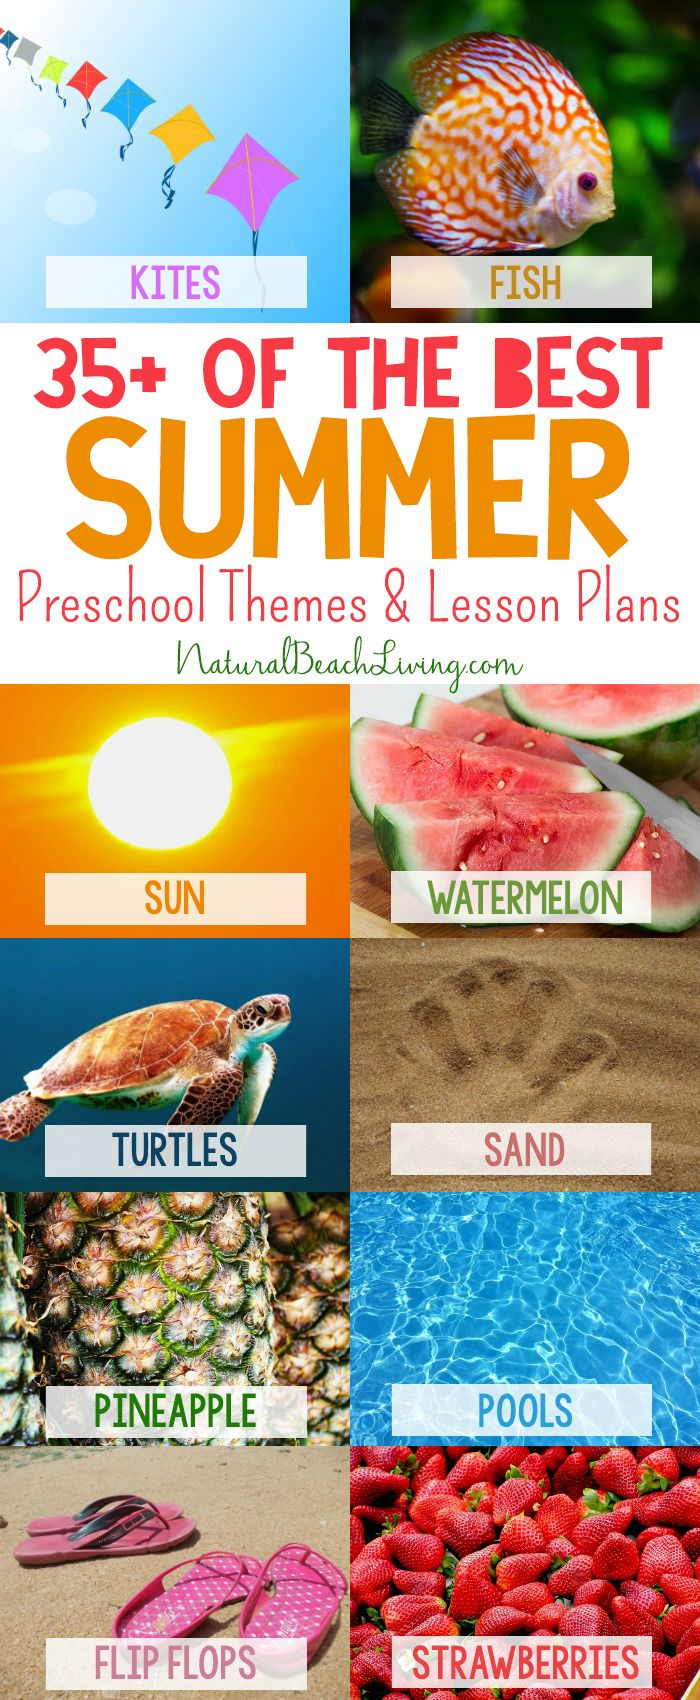 35+ Best Summer Preschool Themes and Activities, Free Printables, Preschool Lessons and Ideas for the Summer, Summer Camp, Beach, Ocean, Under the Sea and More